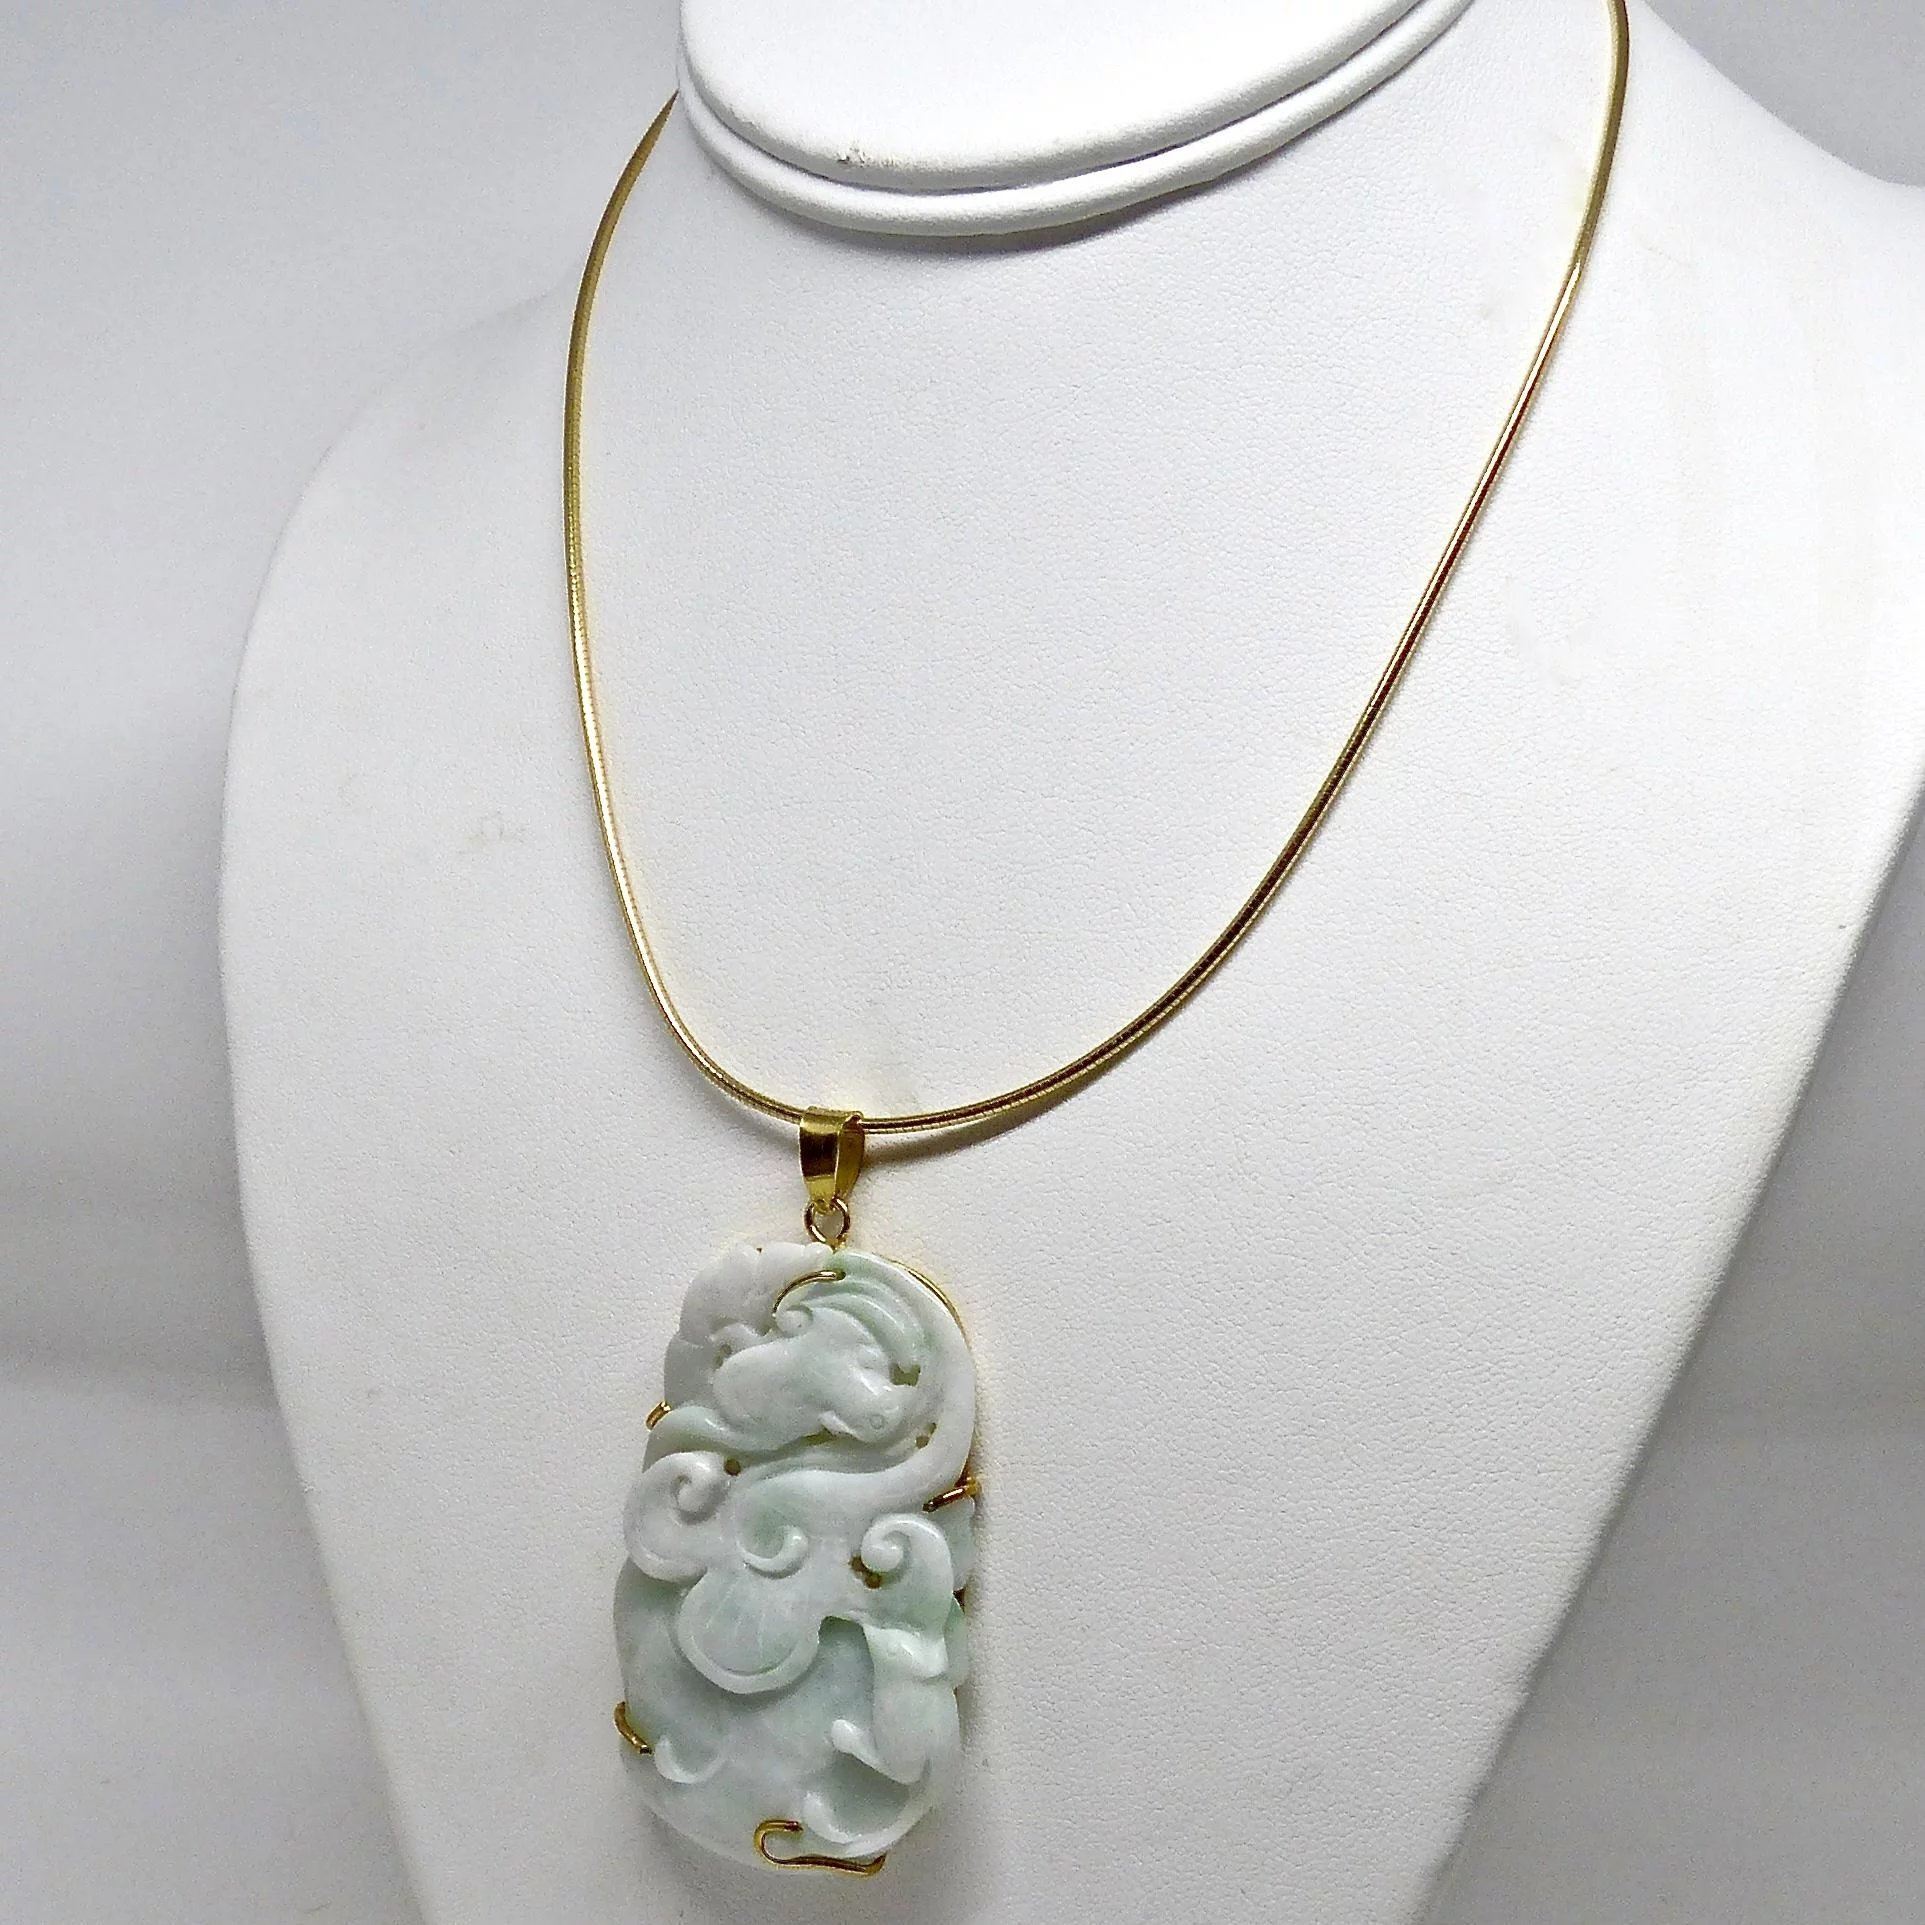 pin carved antique deco jade necklace gold solid pendant yellow art